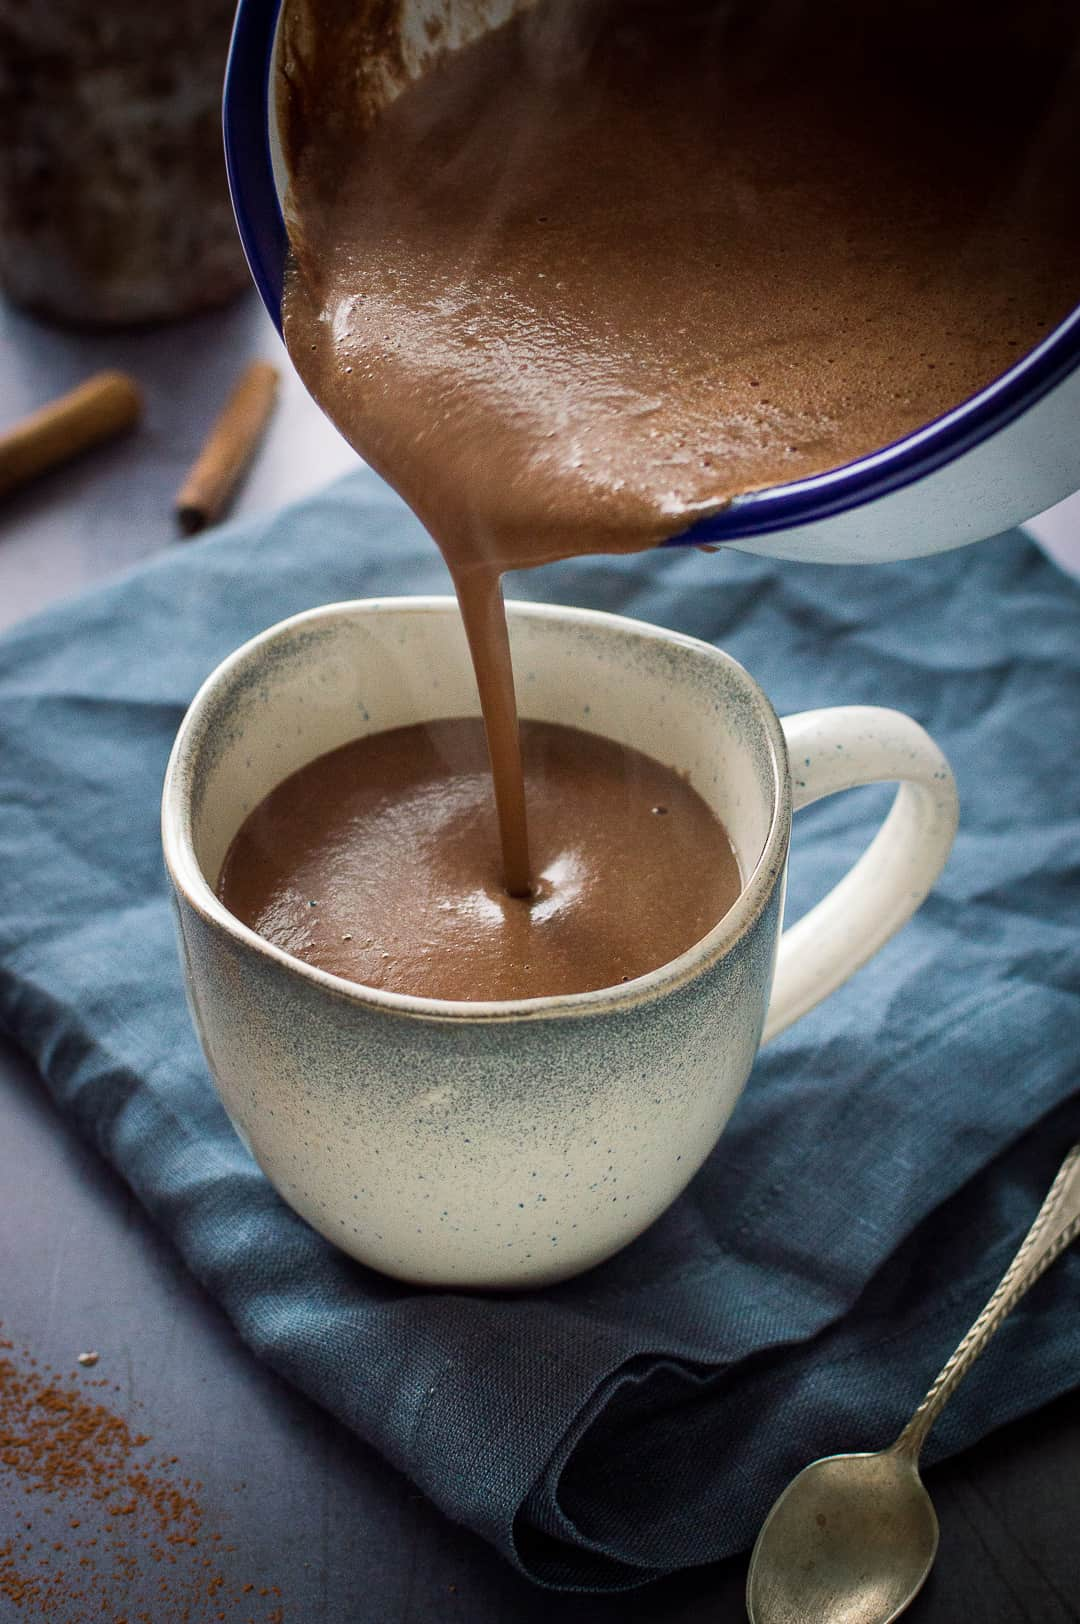 Thick, creamy vegan gingerbread hot chocolate being poured into a grey mug.